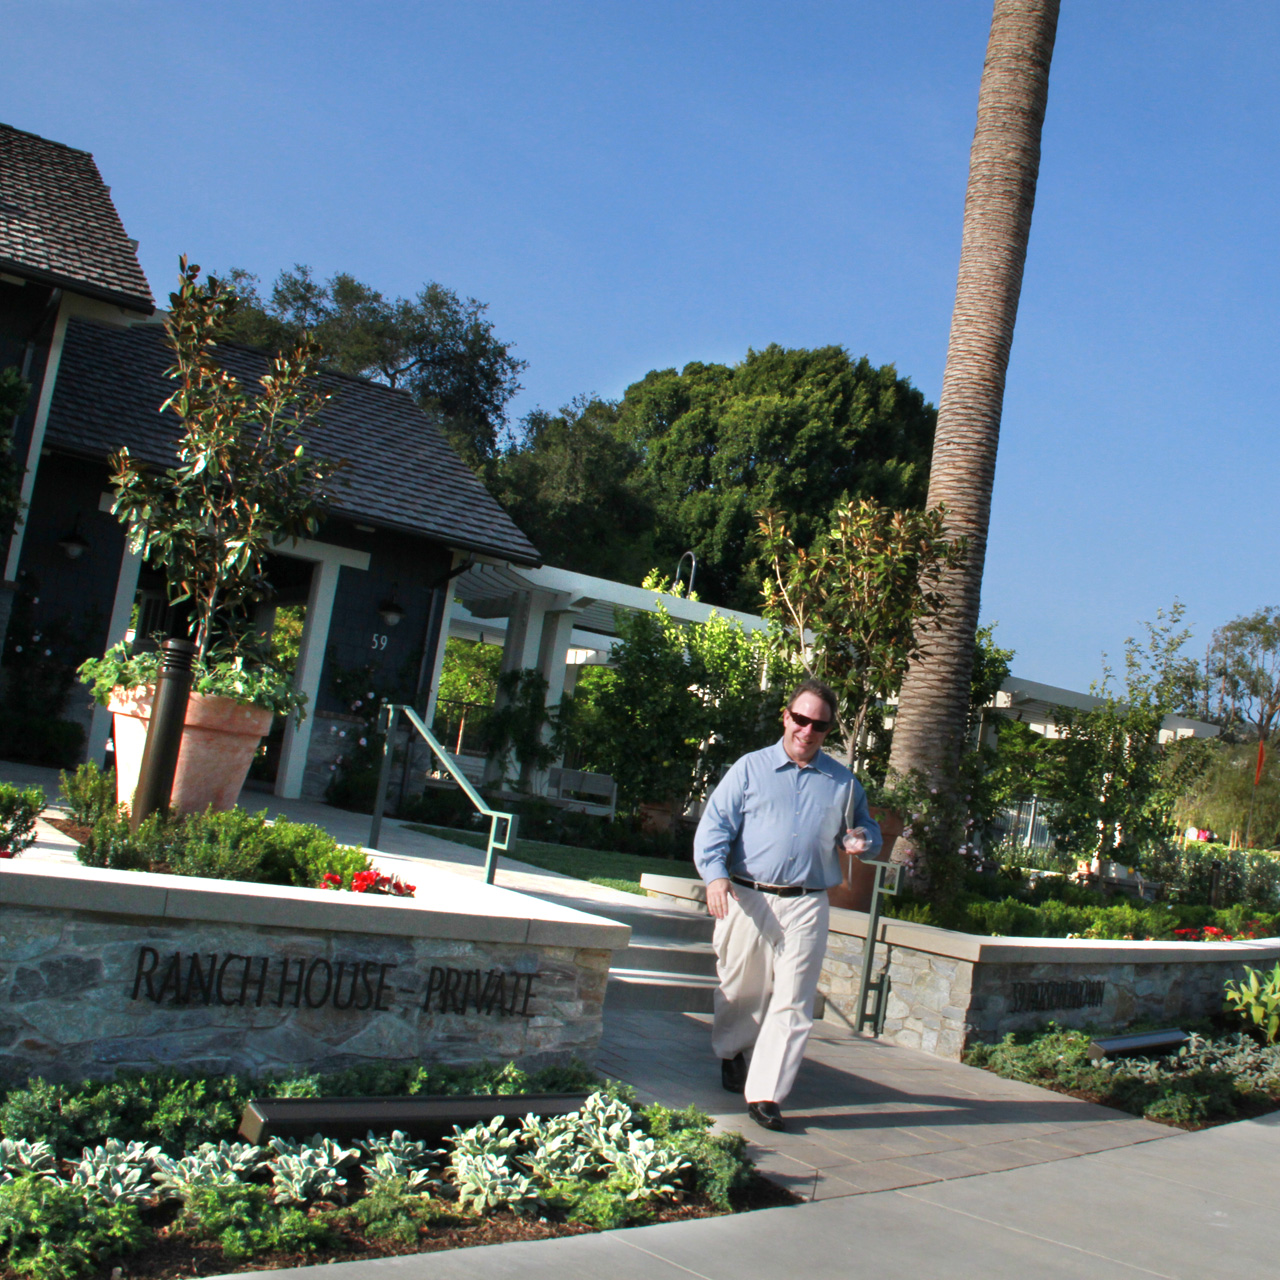 Dan Finder, Surterre Properties @ Lambert Ranch Private broker preview on 2012 04 29